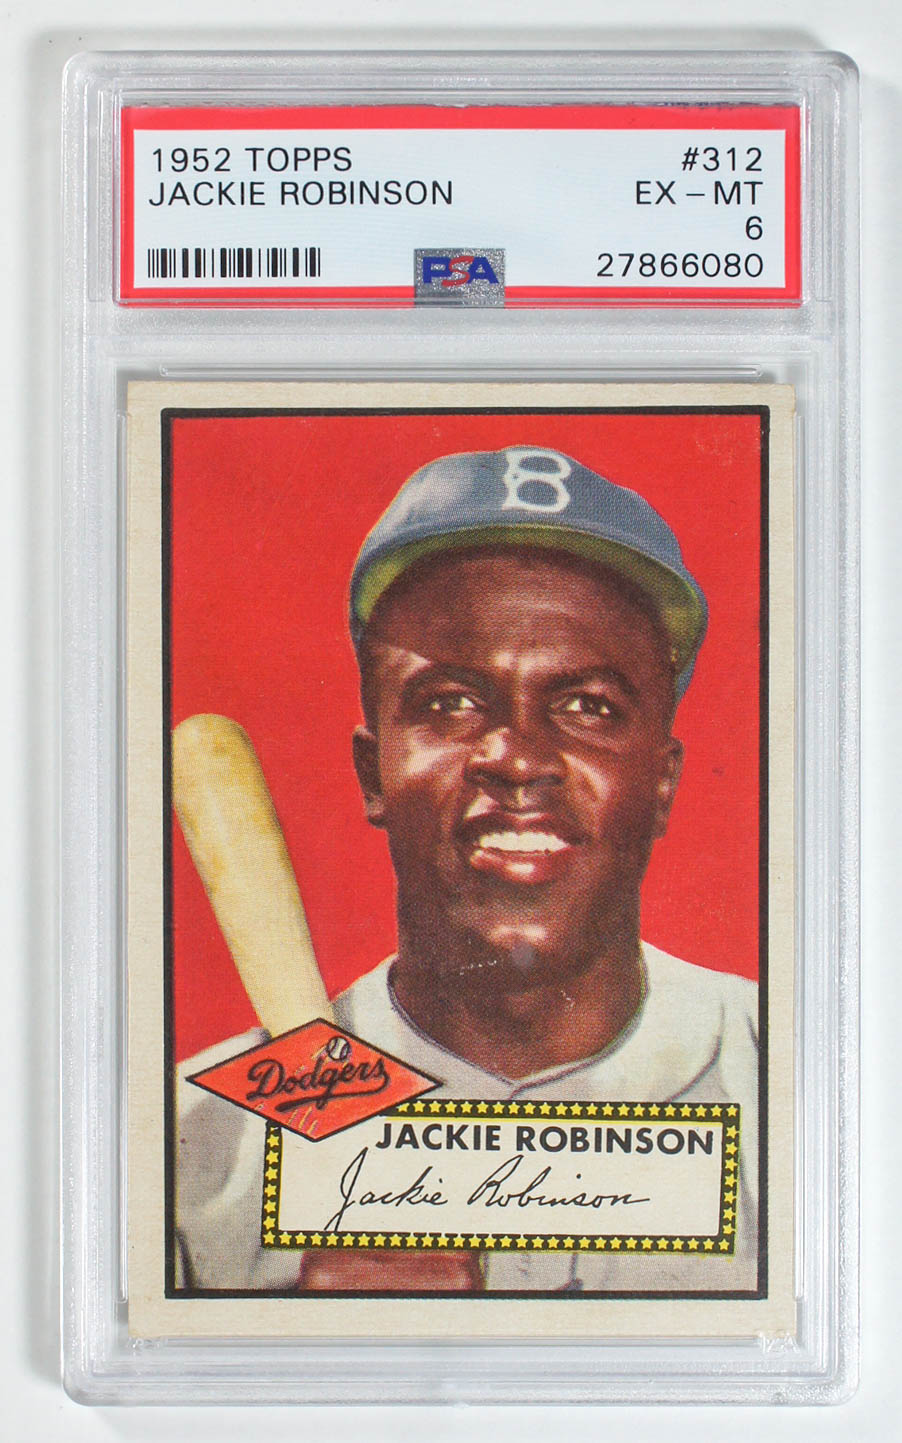 1952 Topps Jackie Robinson Number 312 PSA 6 Ex-Mt